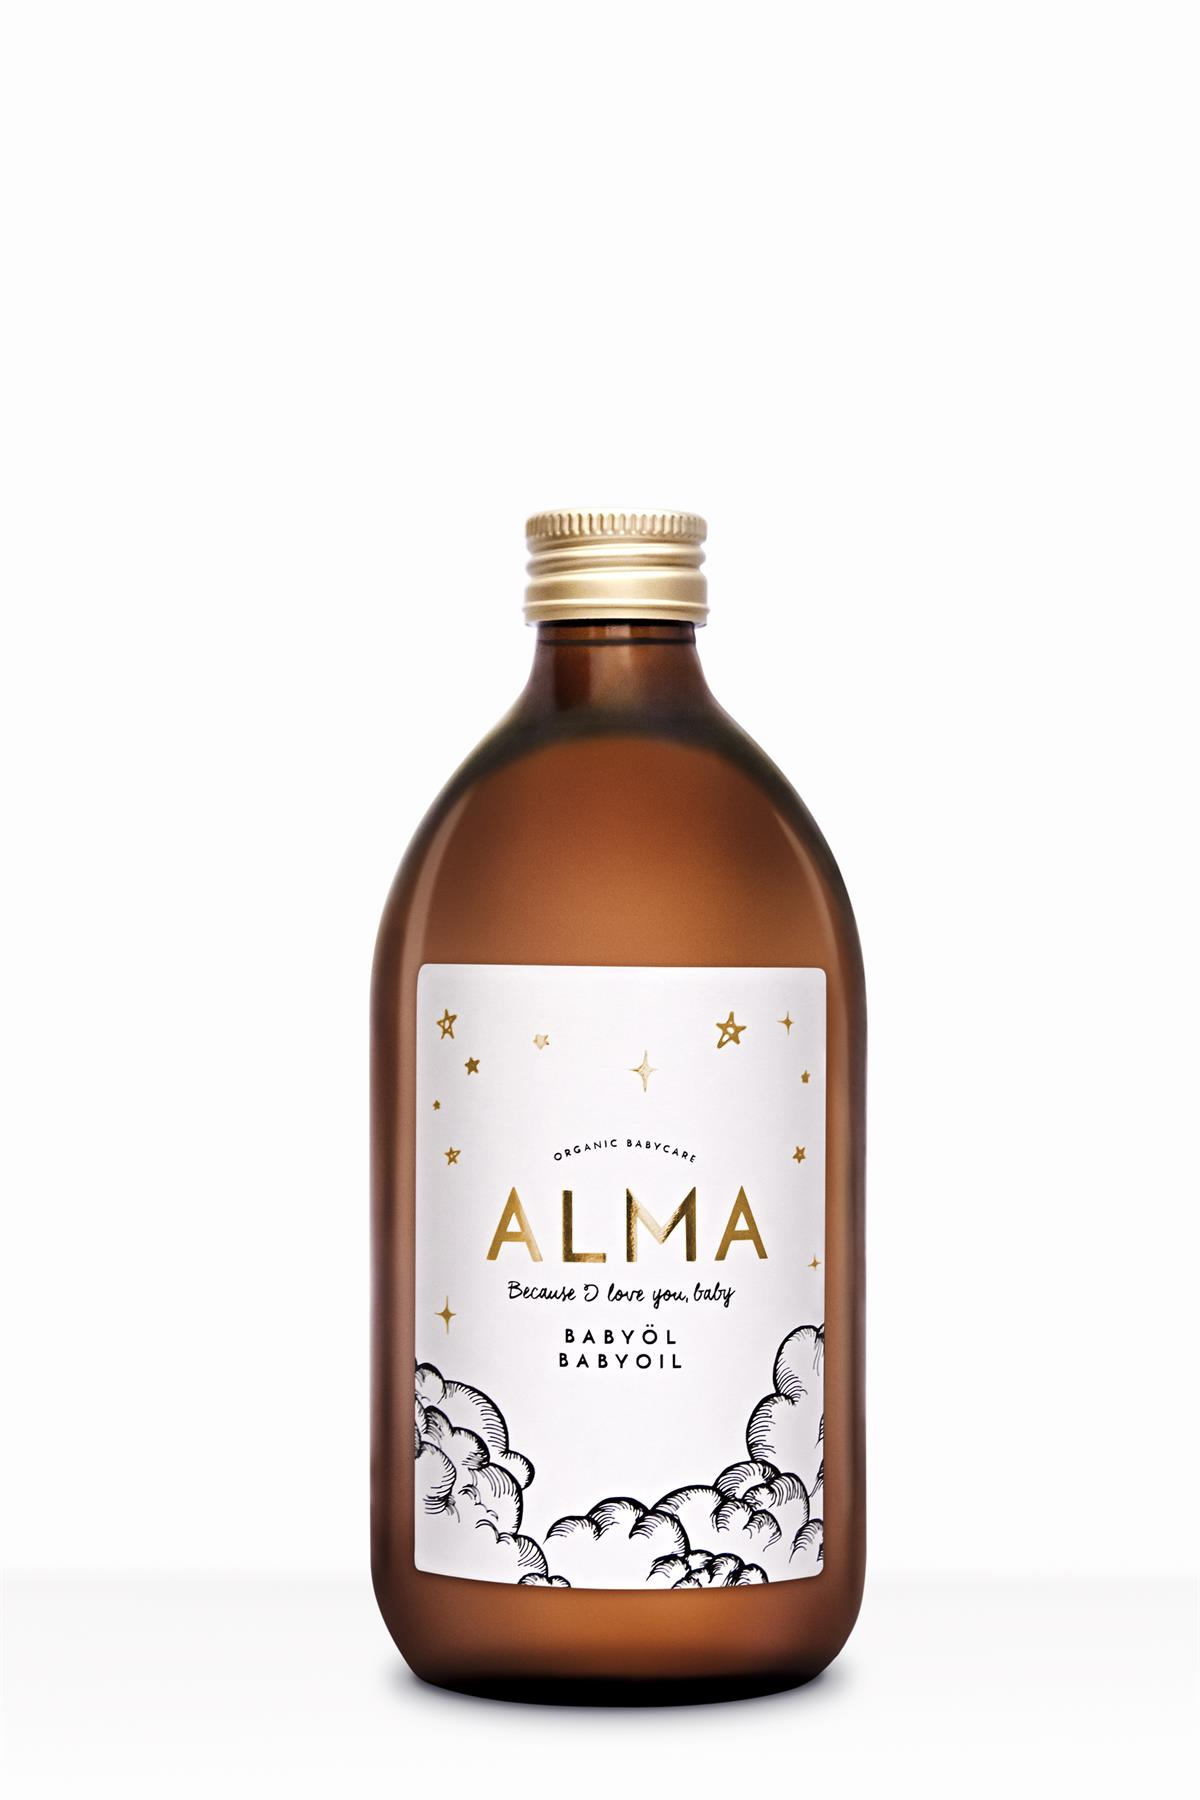 ALMA Babyöl 500ML (Limited Edition) EUR 129